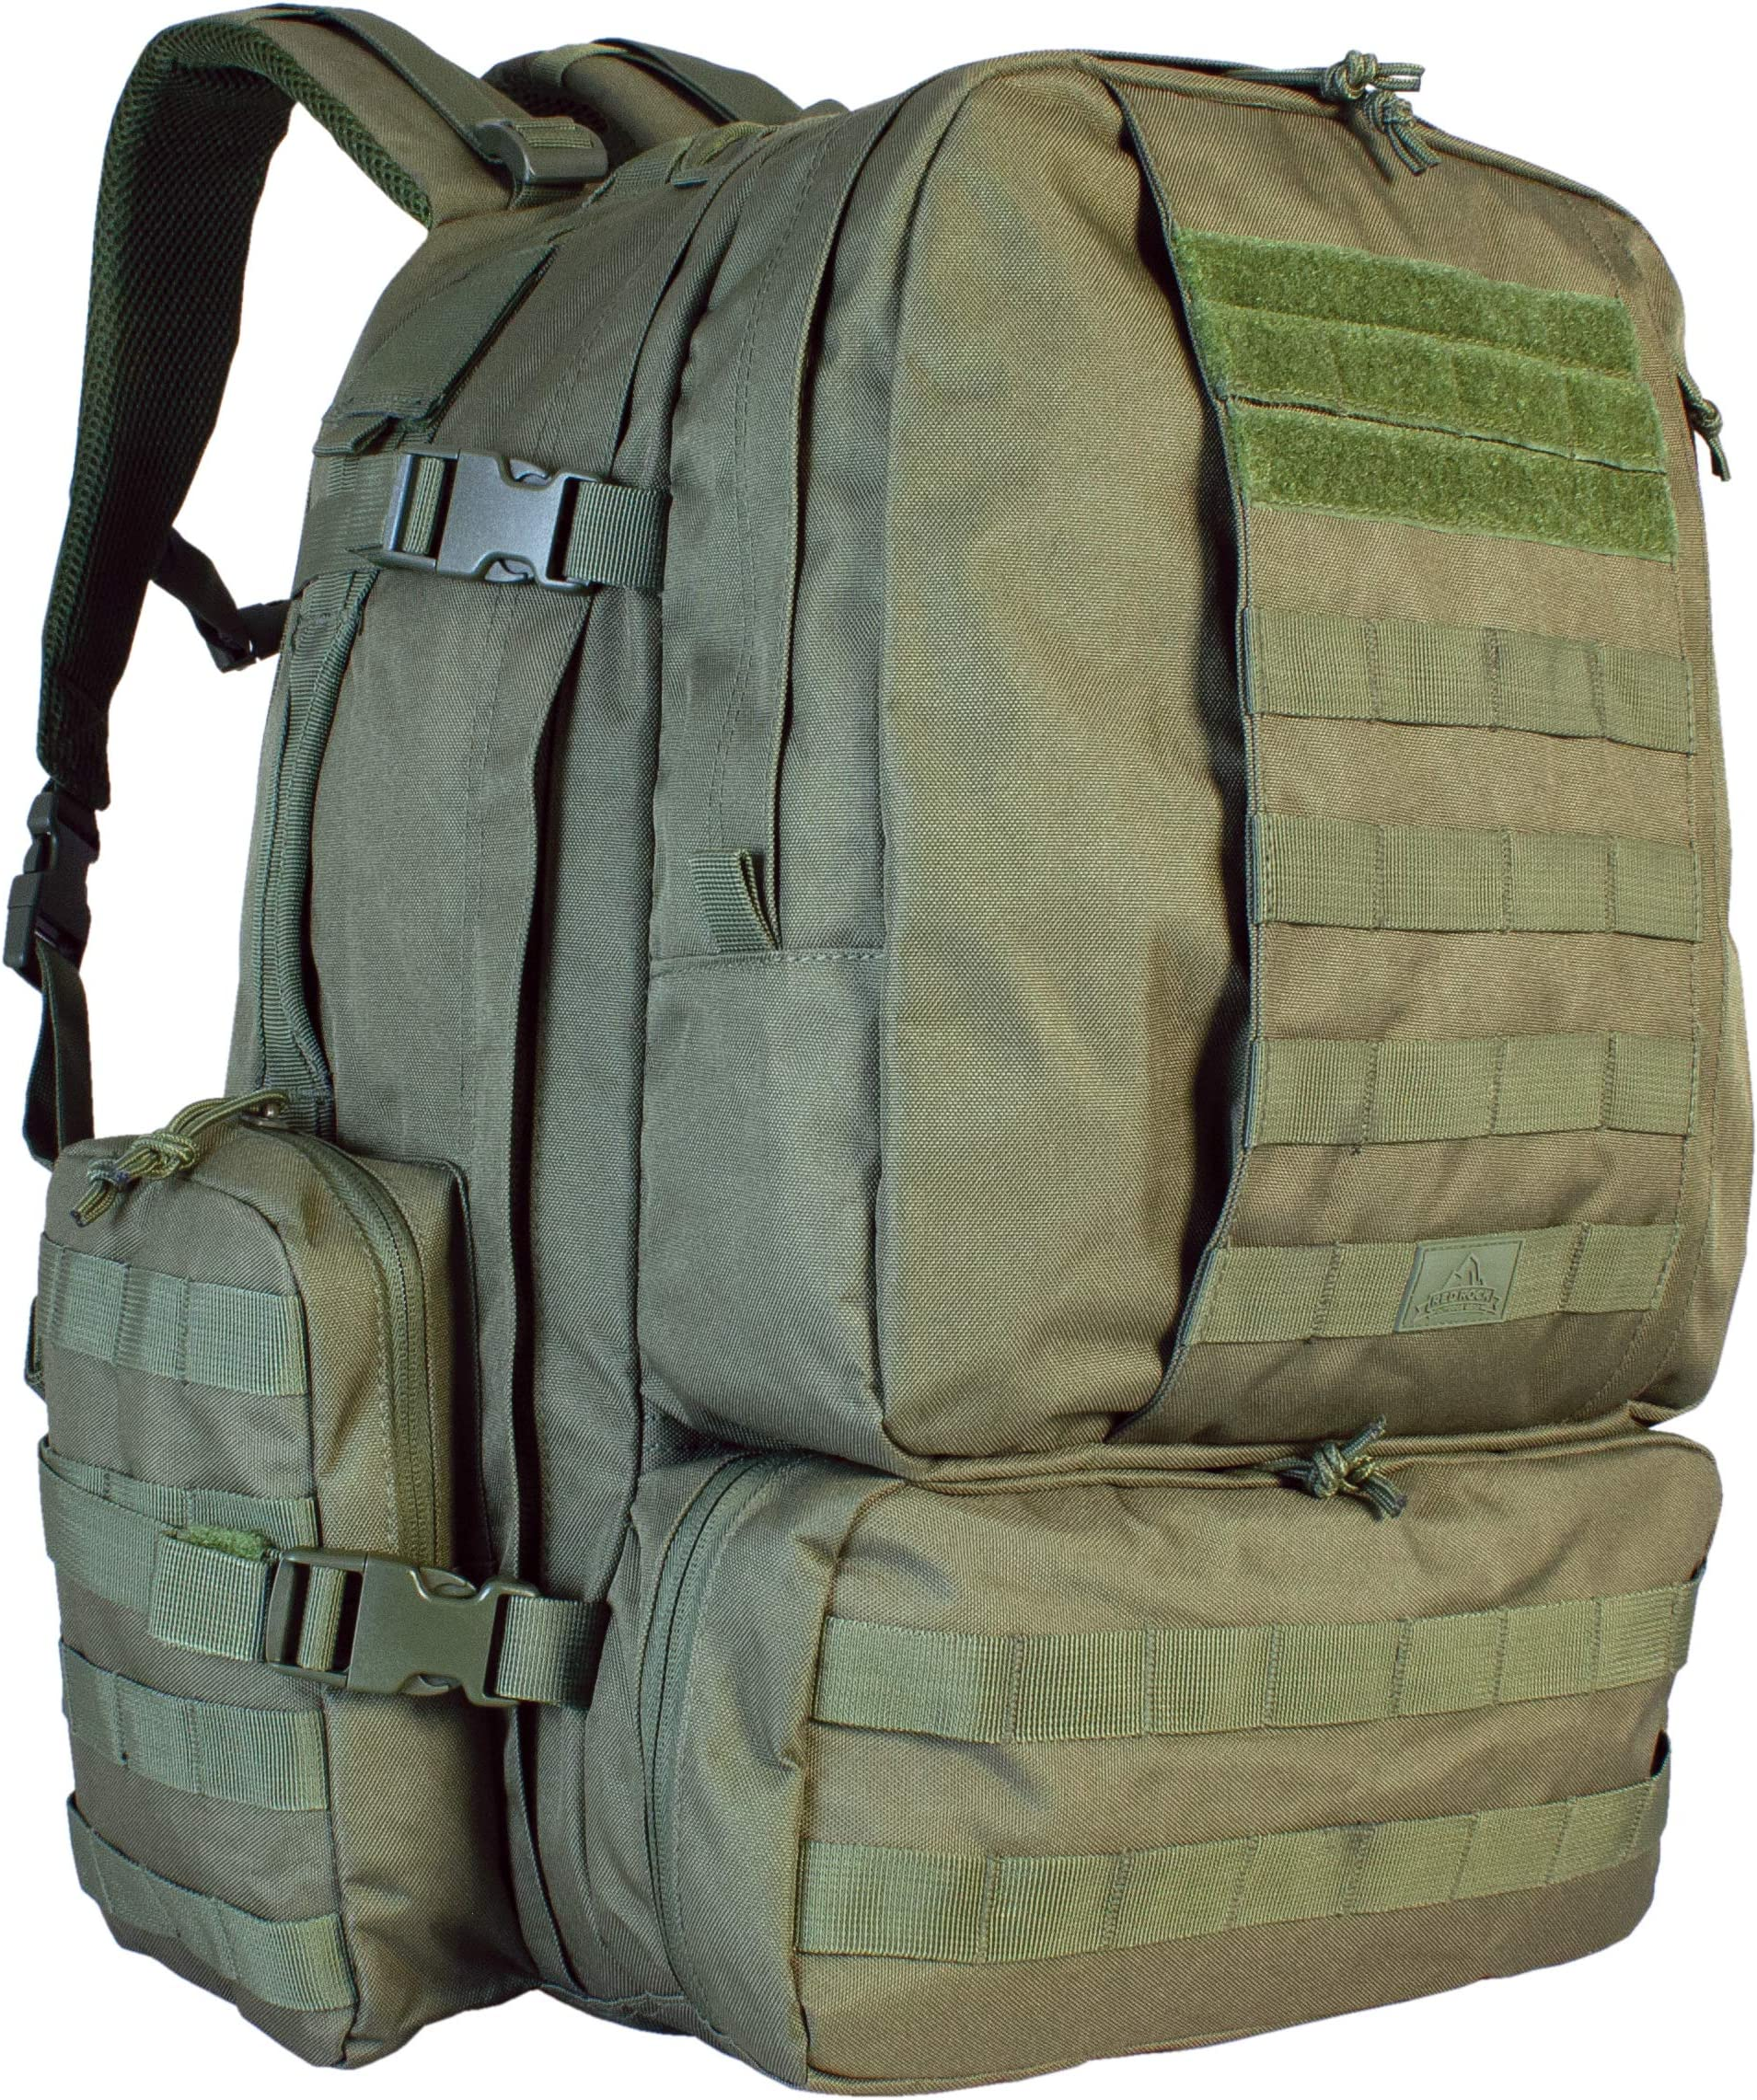 Red Rock Outdoor Gear Diplomat Pack (X-Large, Olive Drab)